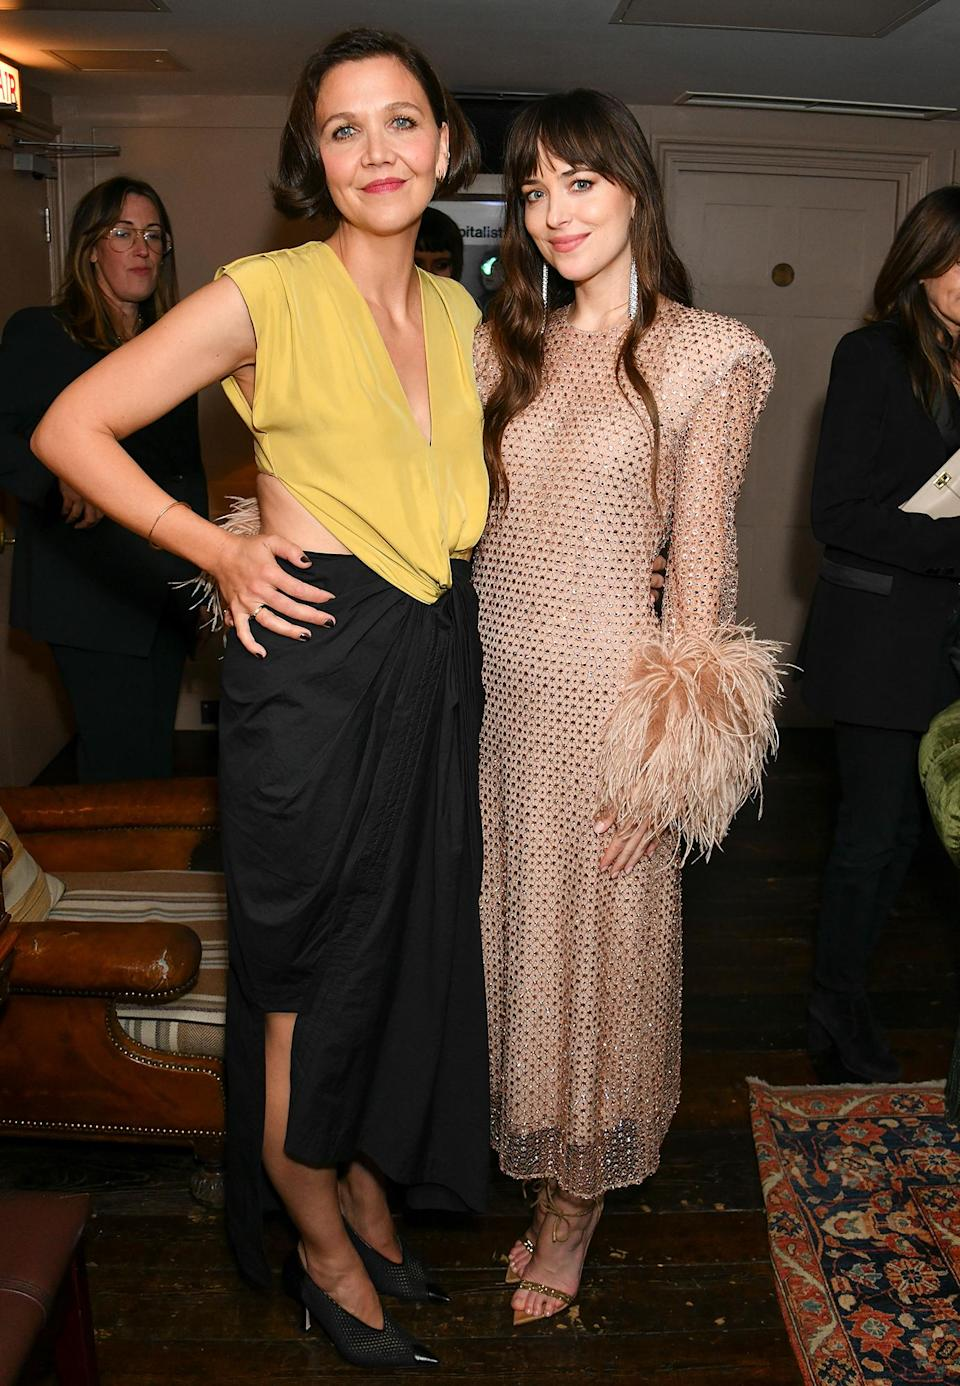 <p>Making her directorial debut with the film <em>The Lost Daughter,</em> Maggie Gyllenhaal joins Dakota Johnson, who plays Nina, at the Tastemaker screening in London on Oct. 13.</p>